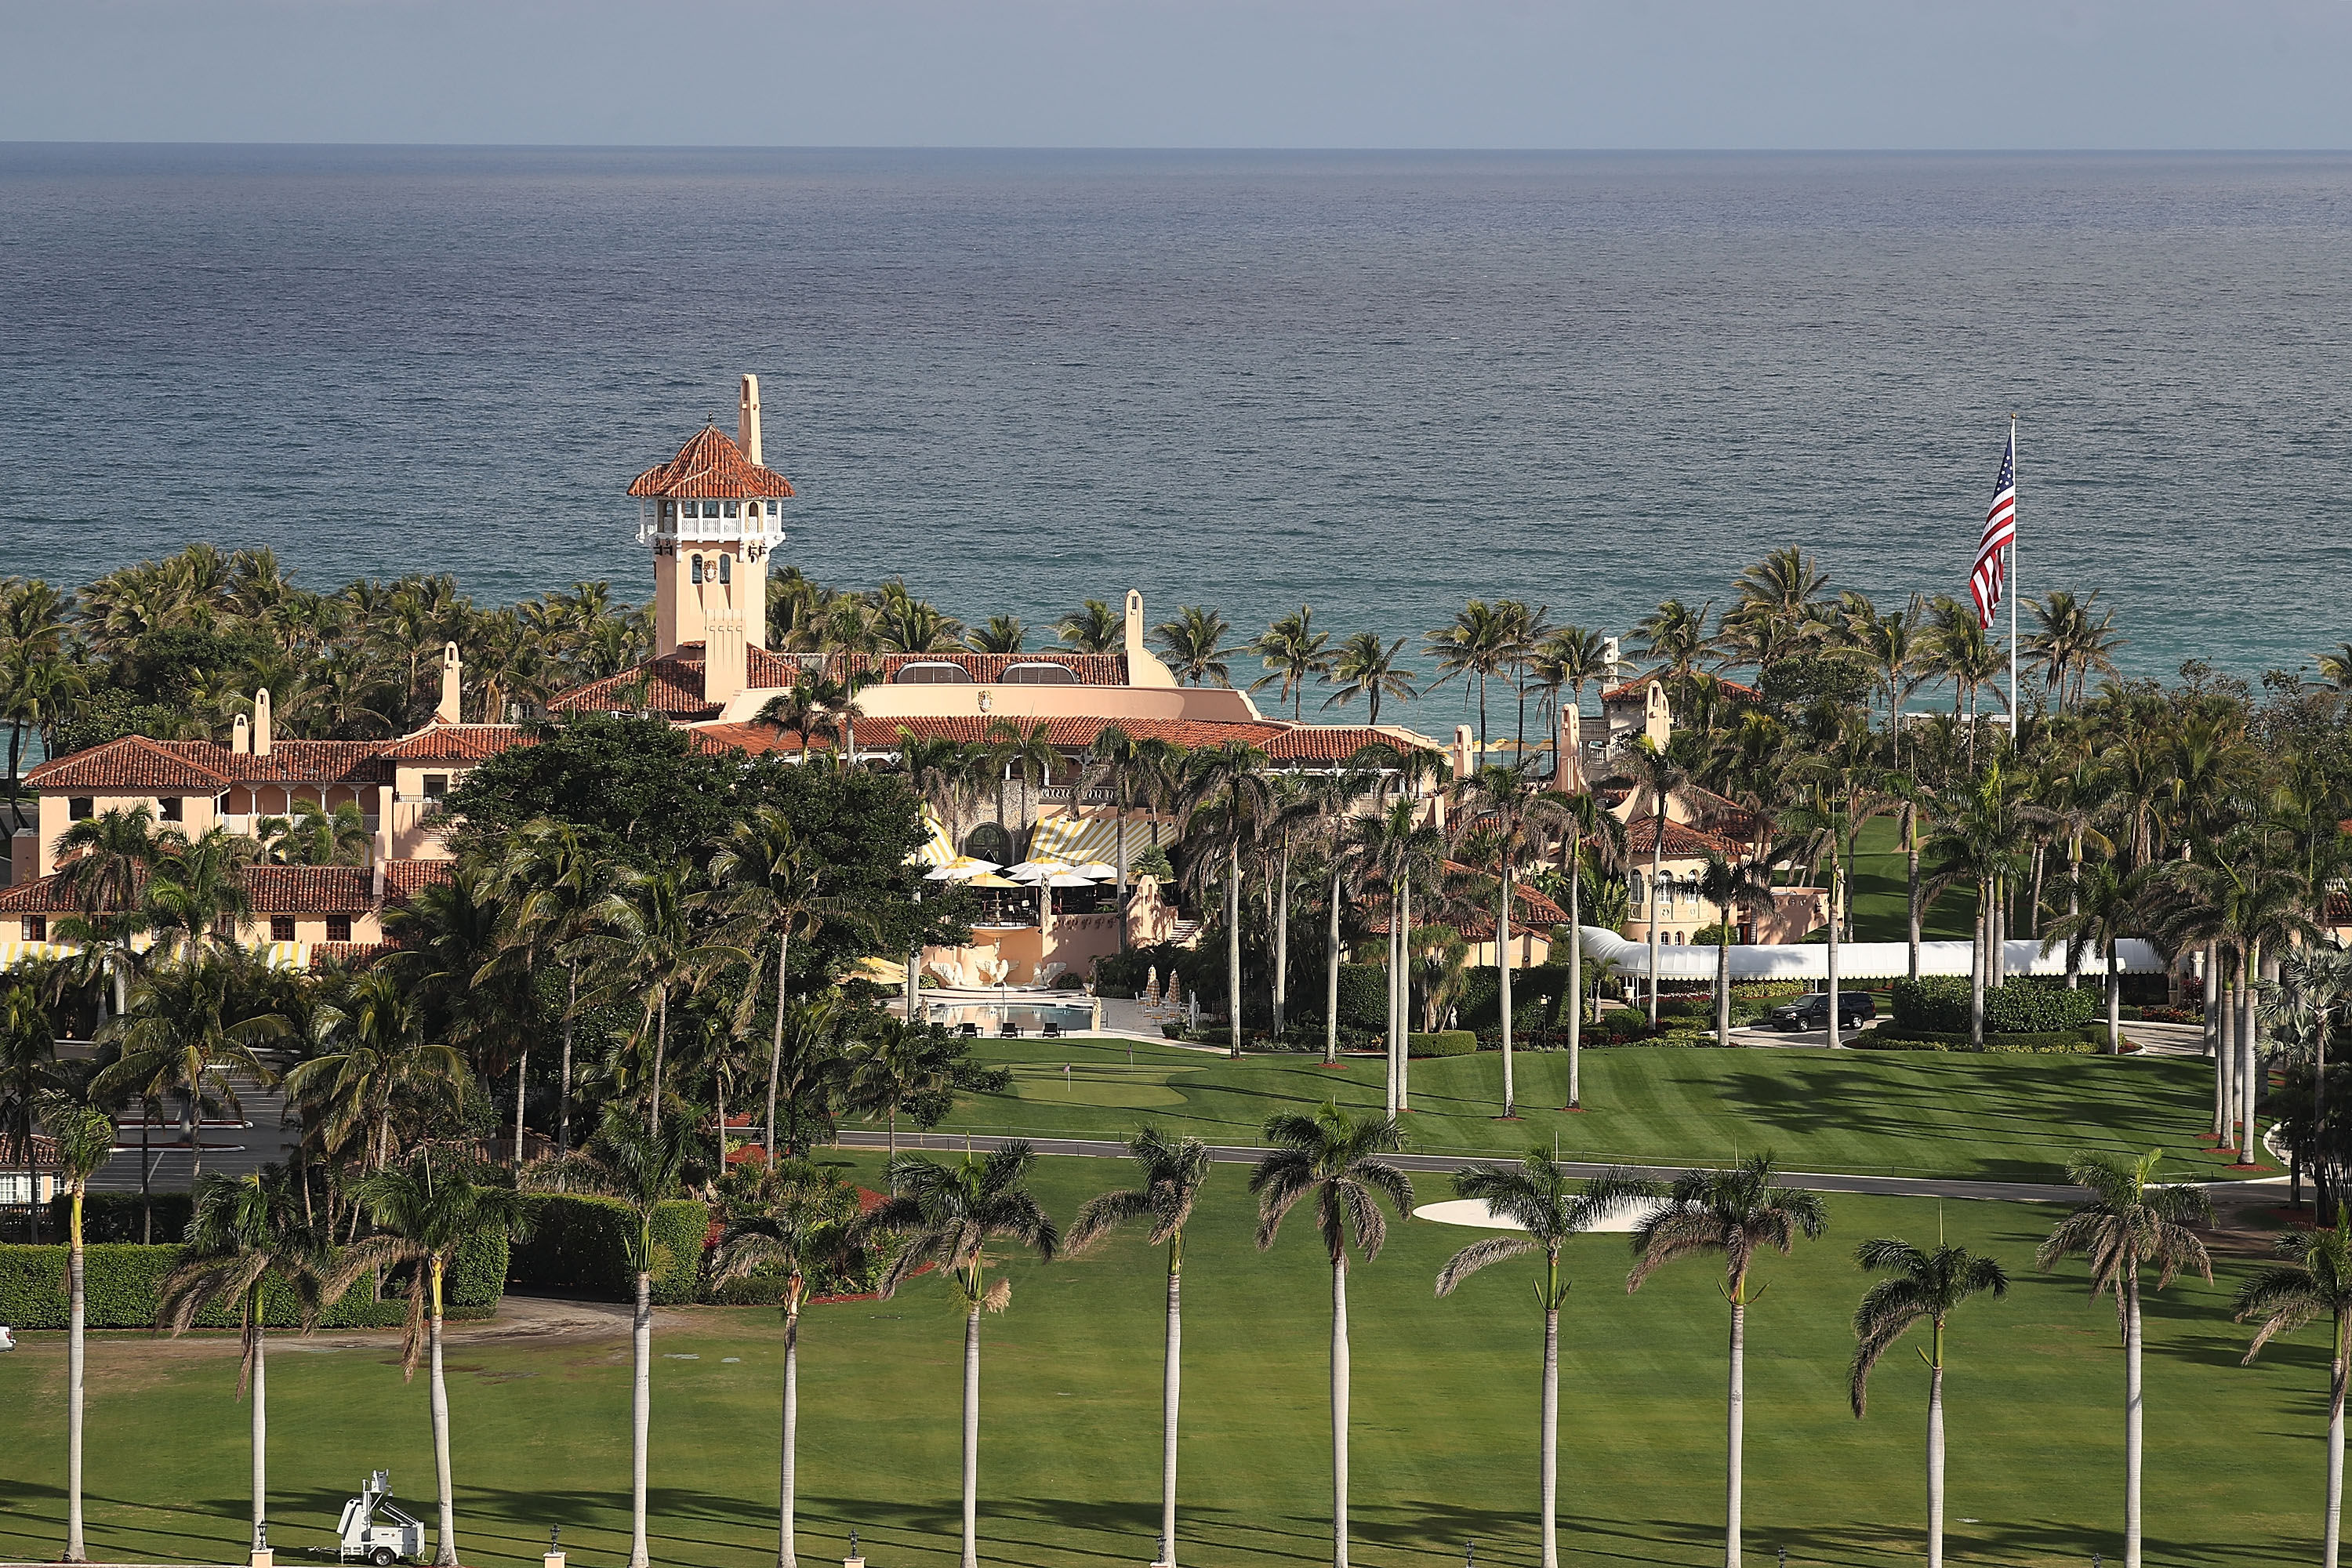 President Donald Trump's beach front Mar-a-Lago resort on Jan. 11, 2018